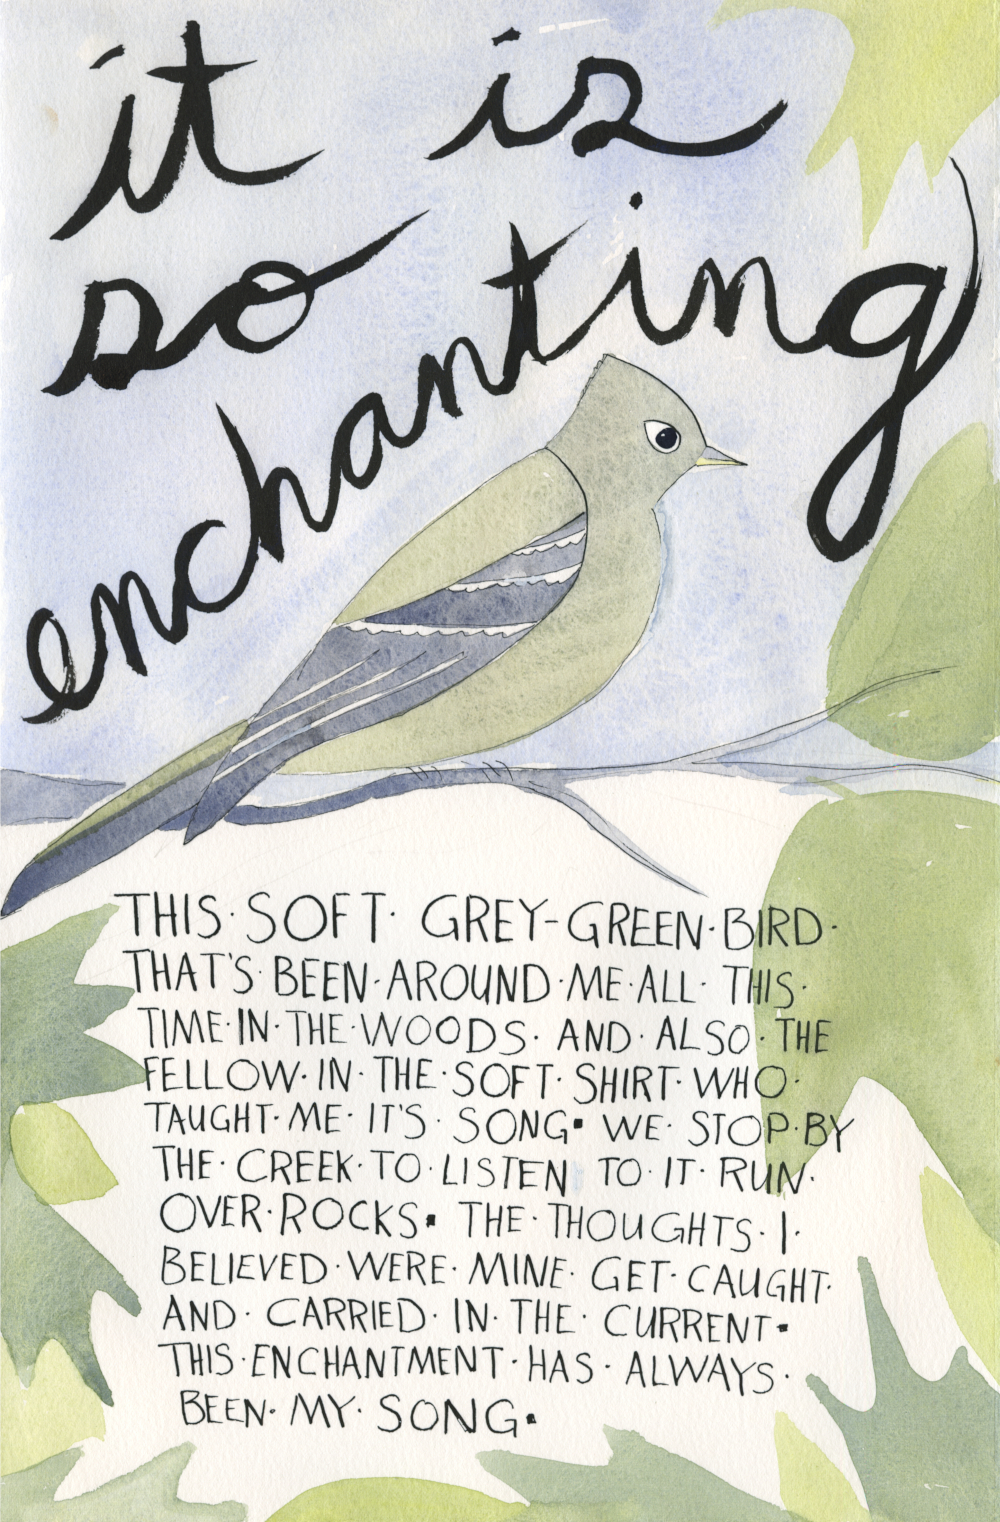 "illustration of a flycatcher. Handwritten text reads ""It's so enchanting— this soft grey-green bird that's been around me in the woods all this time. And also, the fellow in the soft shirt who taught me its song.  We stop by the creek to listen to it run over the rocks. The thoughts I believed were mine get caught and carried in the current. This enchantment has always been my song."""